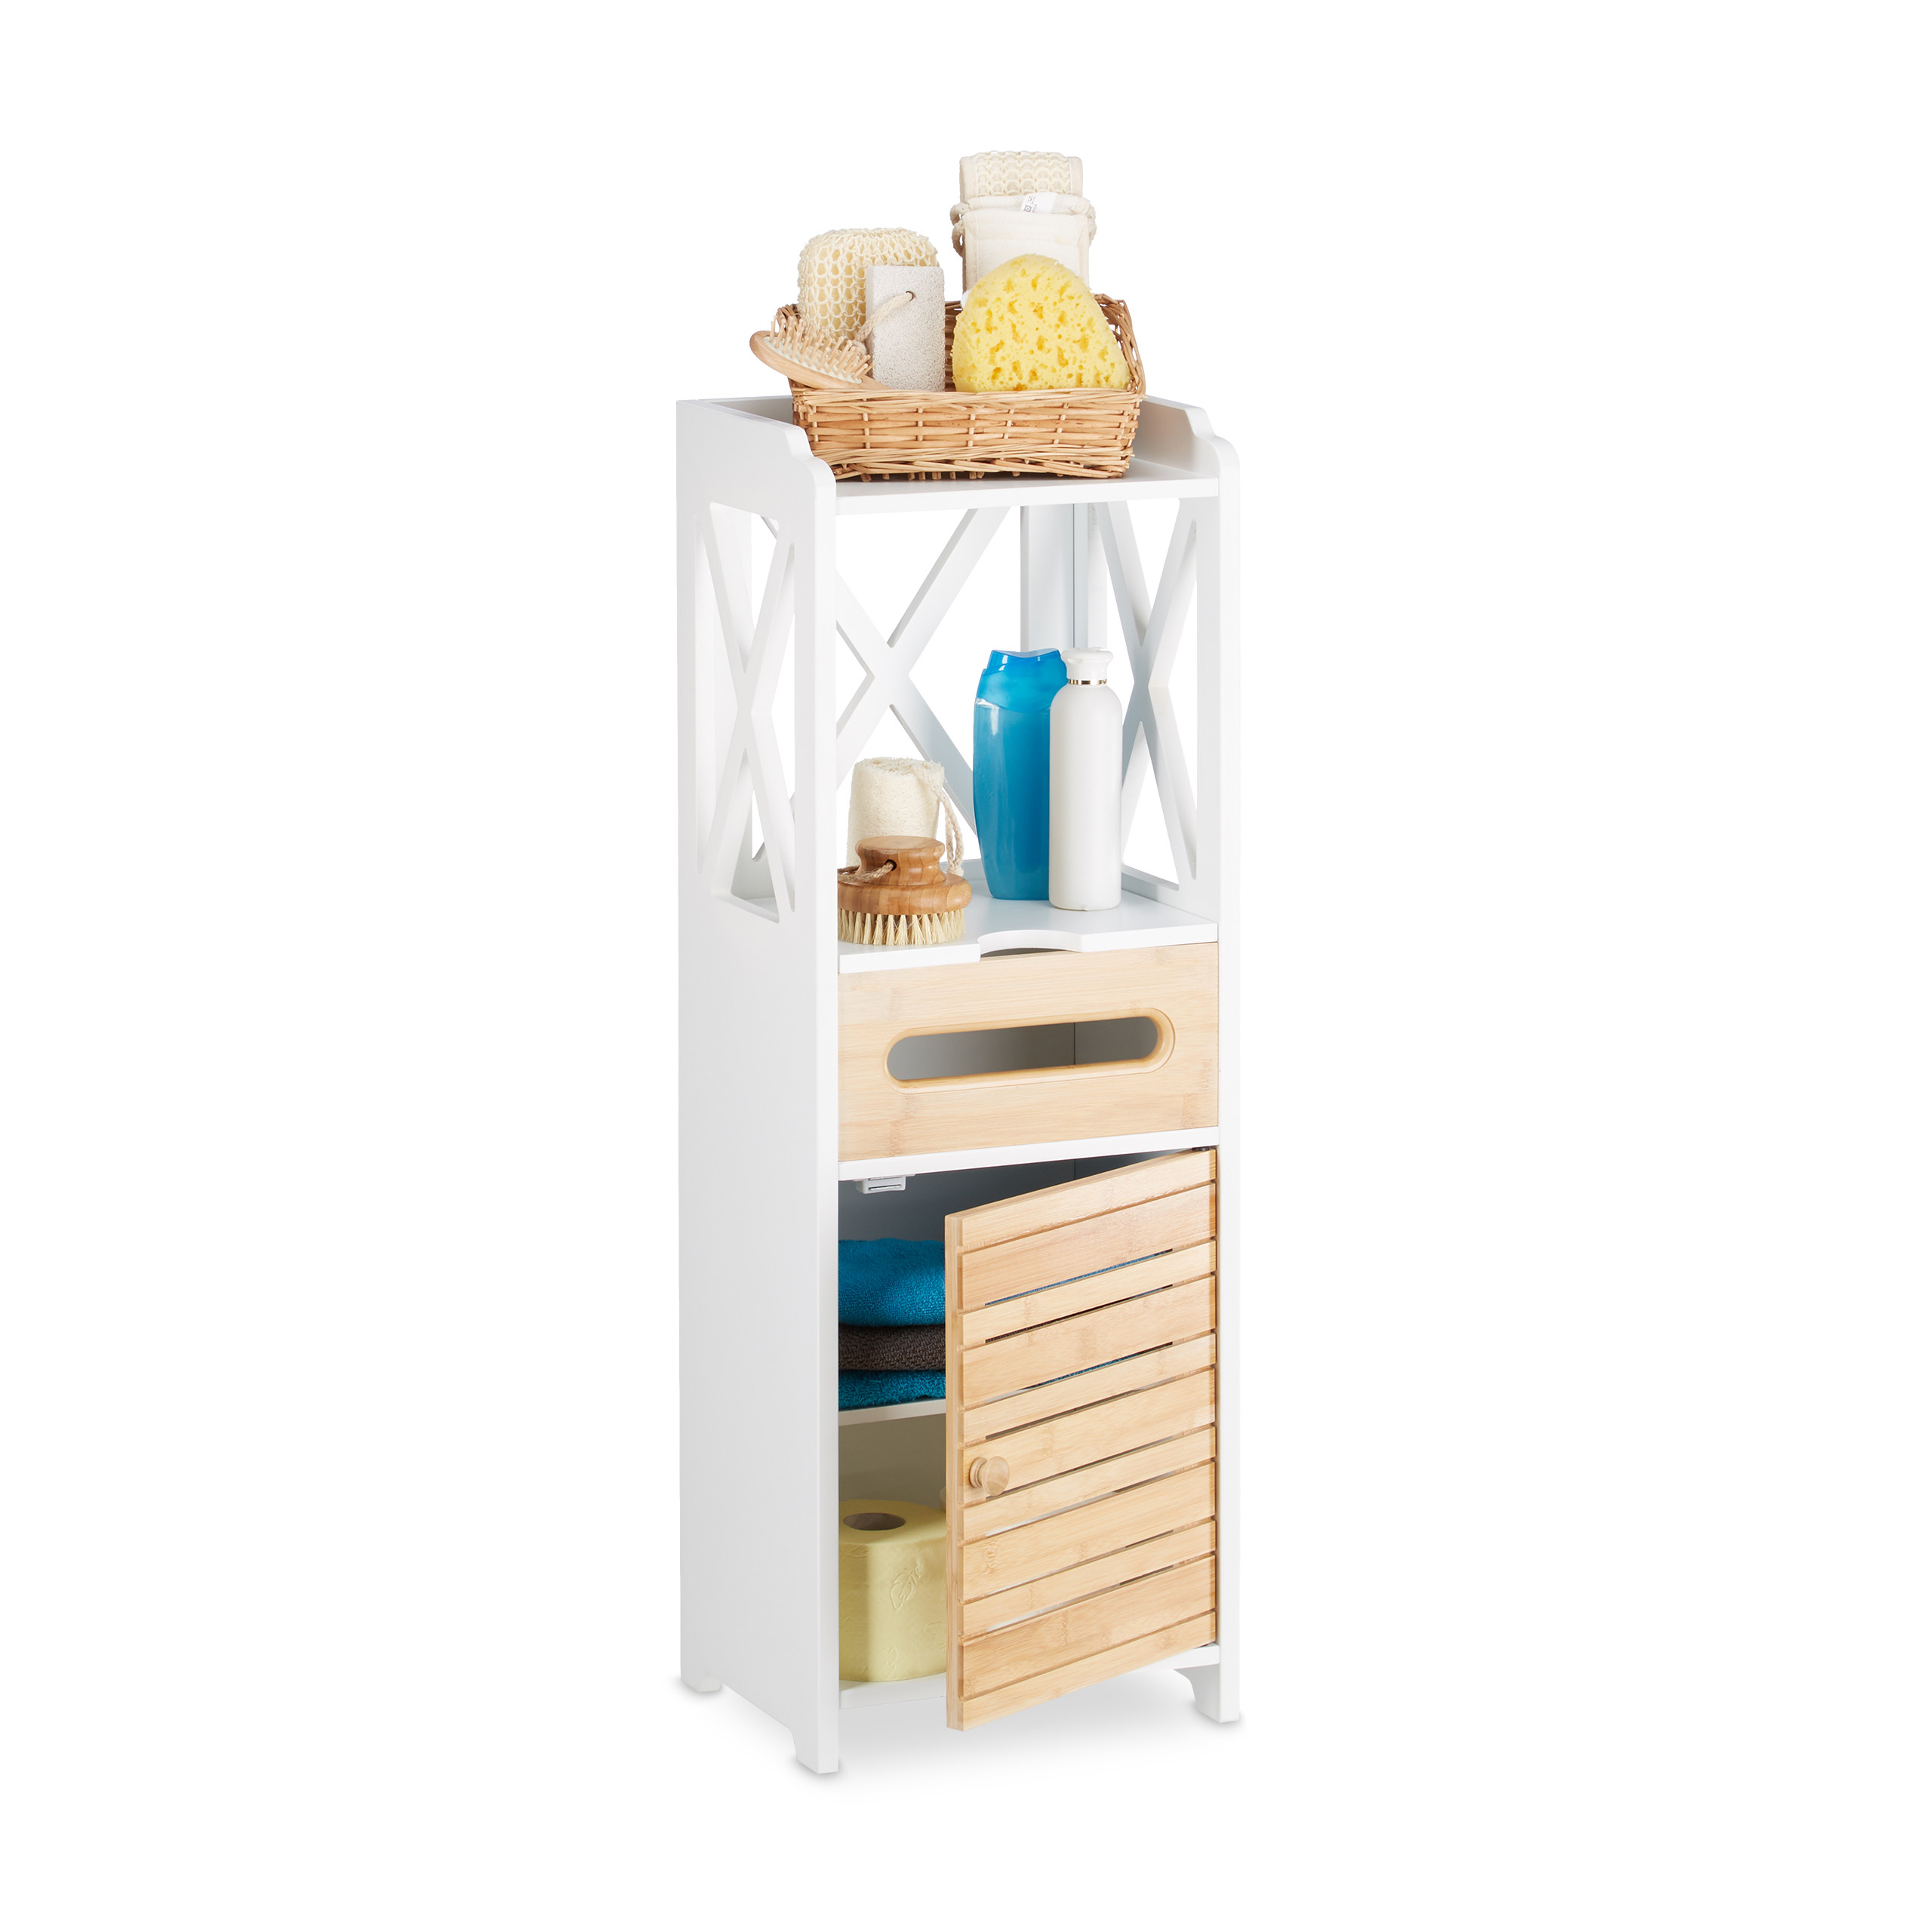 Beistellschrank Small Shelf Cabinet 5 Shelves Multi Purpose